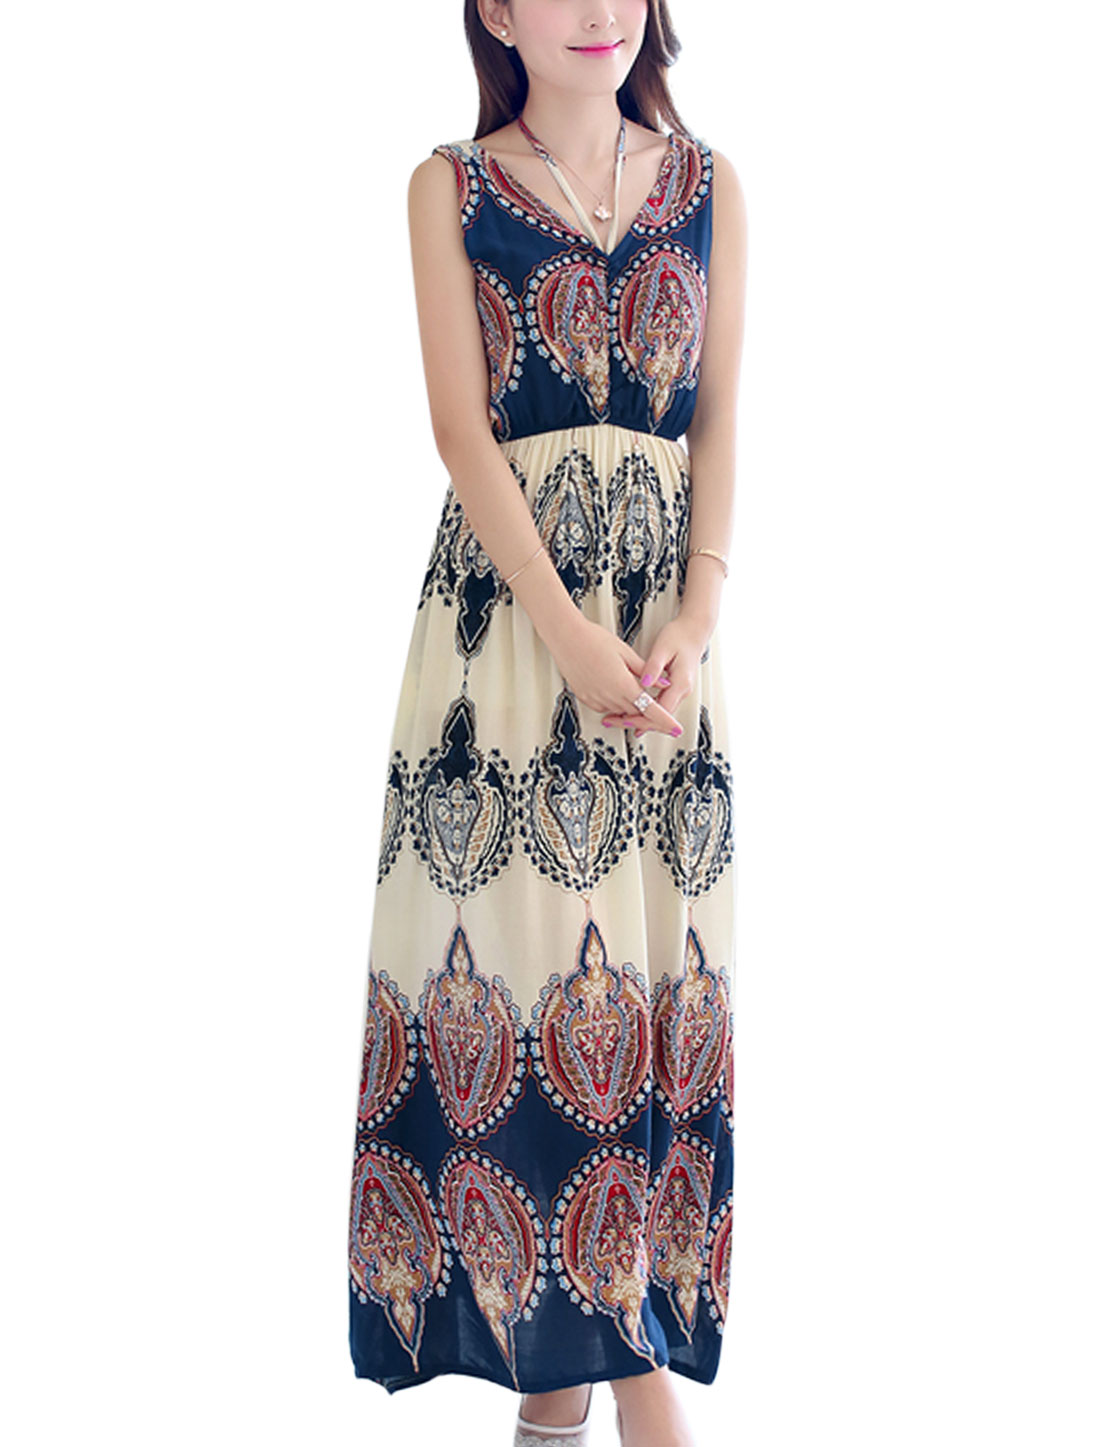 Ladies NEW V Neck Novelty Prints Full Length Maxi Dress Beige Navy Blue S